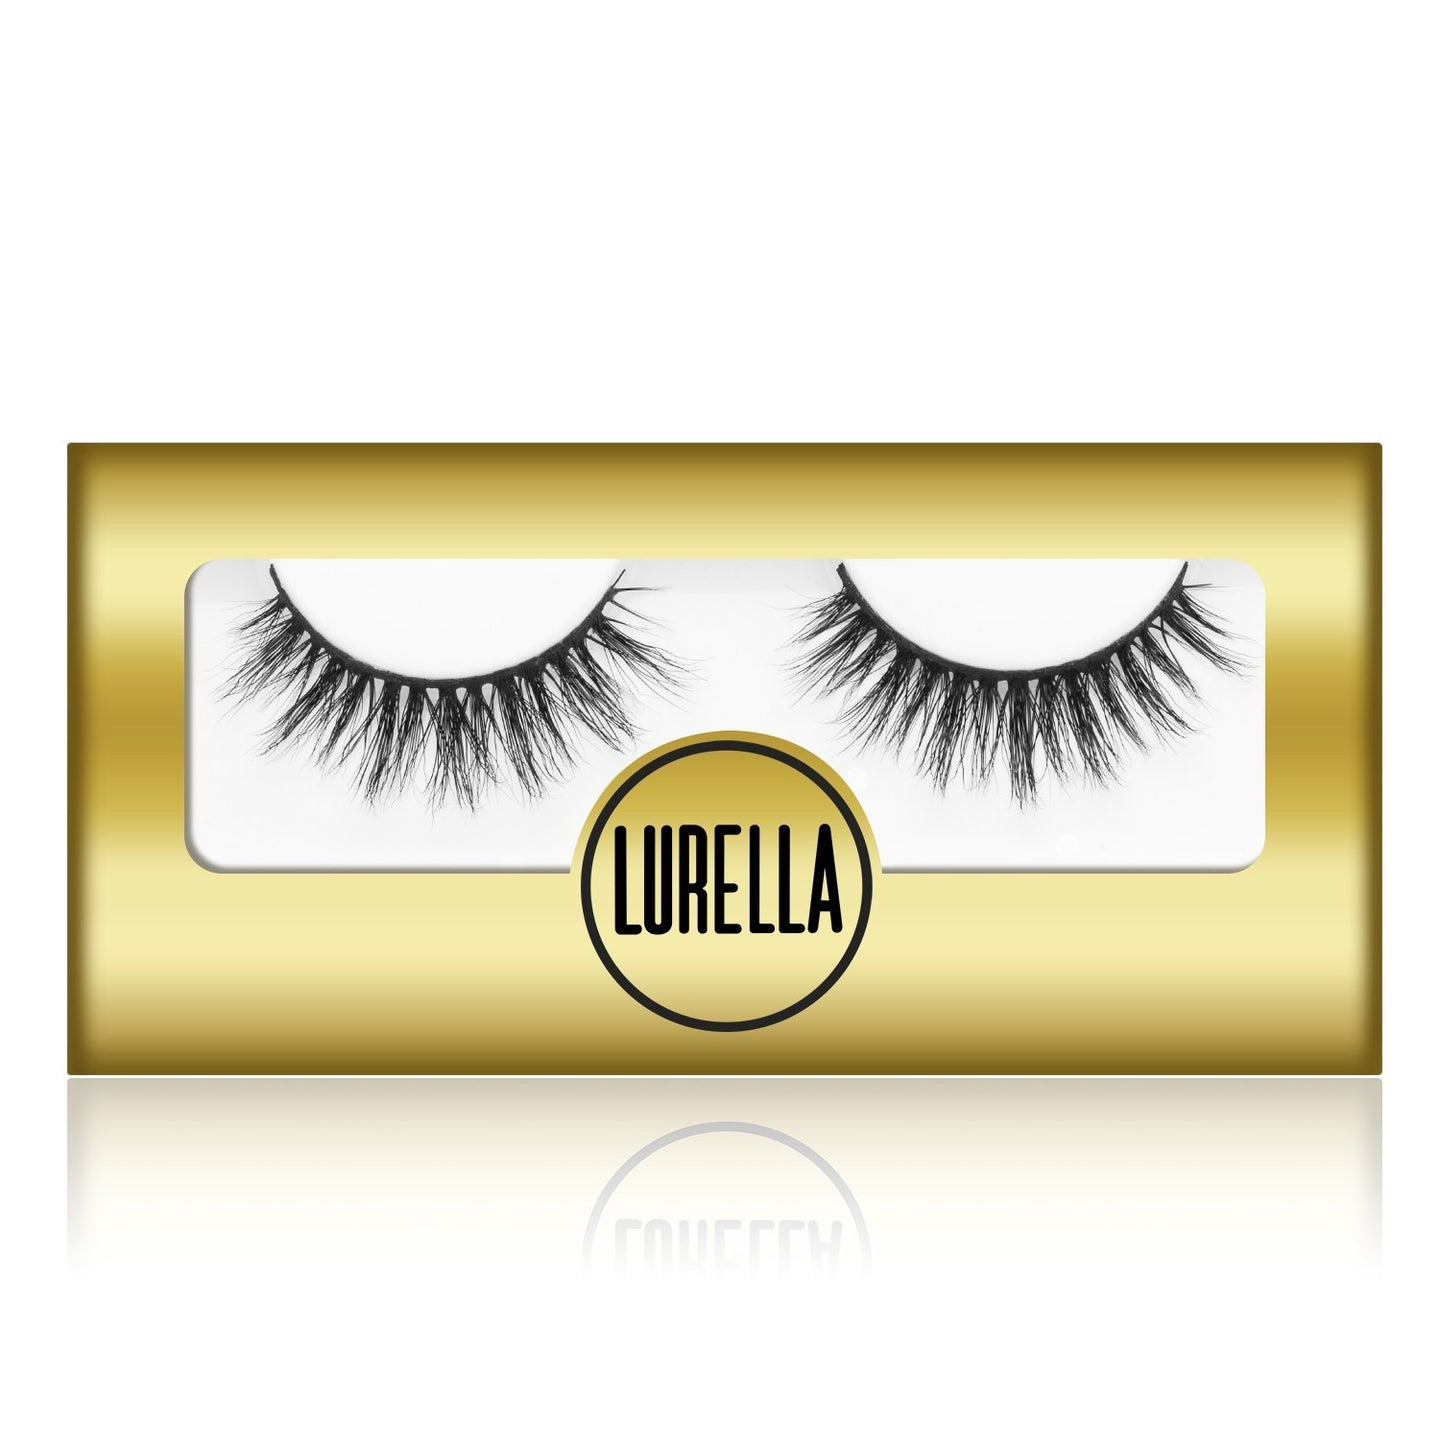 Lurella 3D Mink Lashes (Parrish)